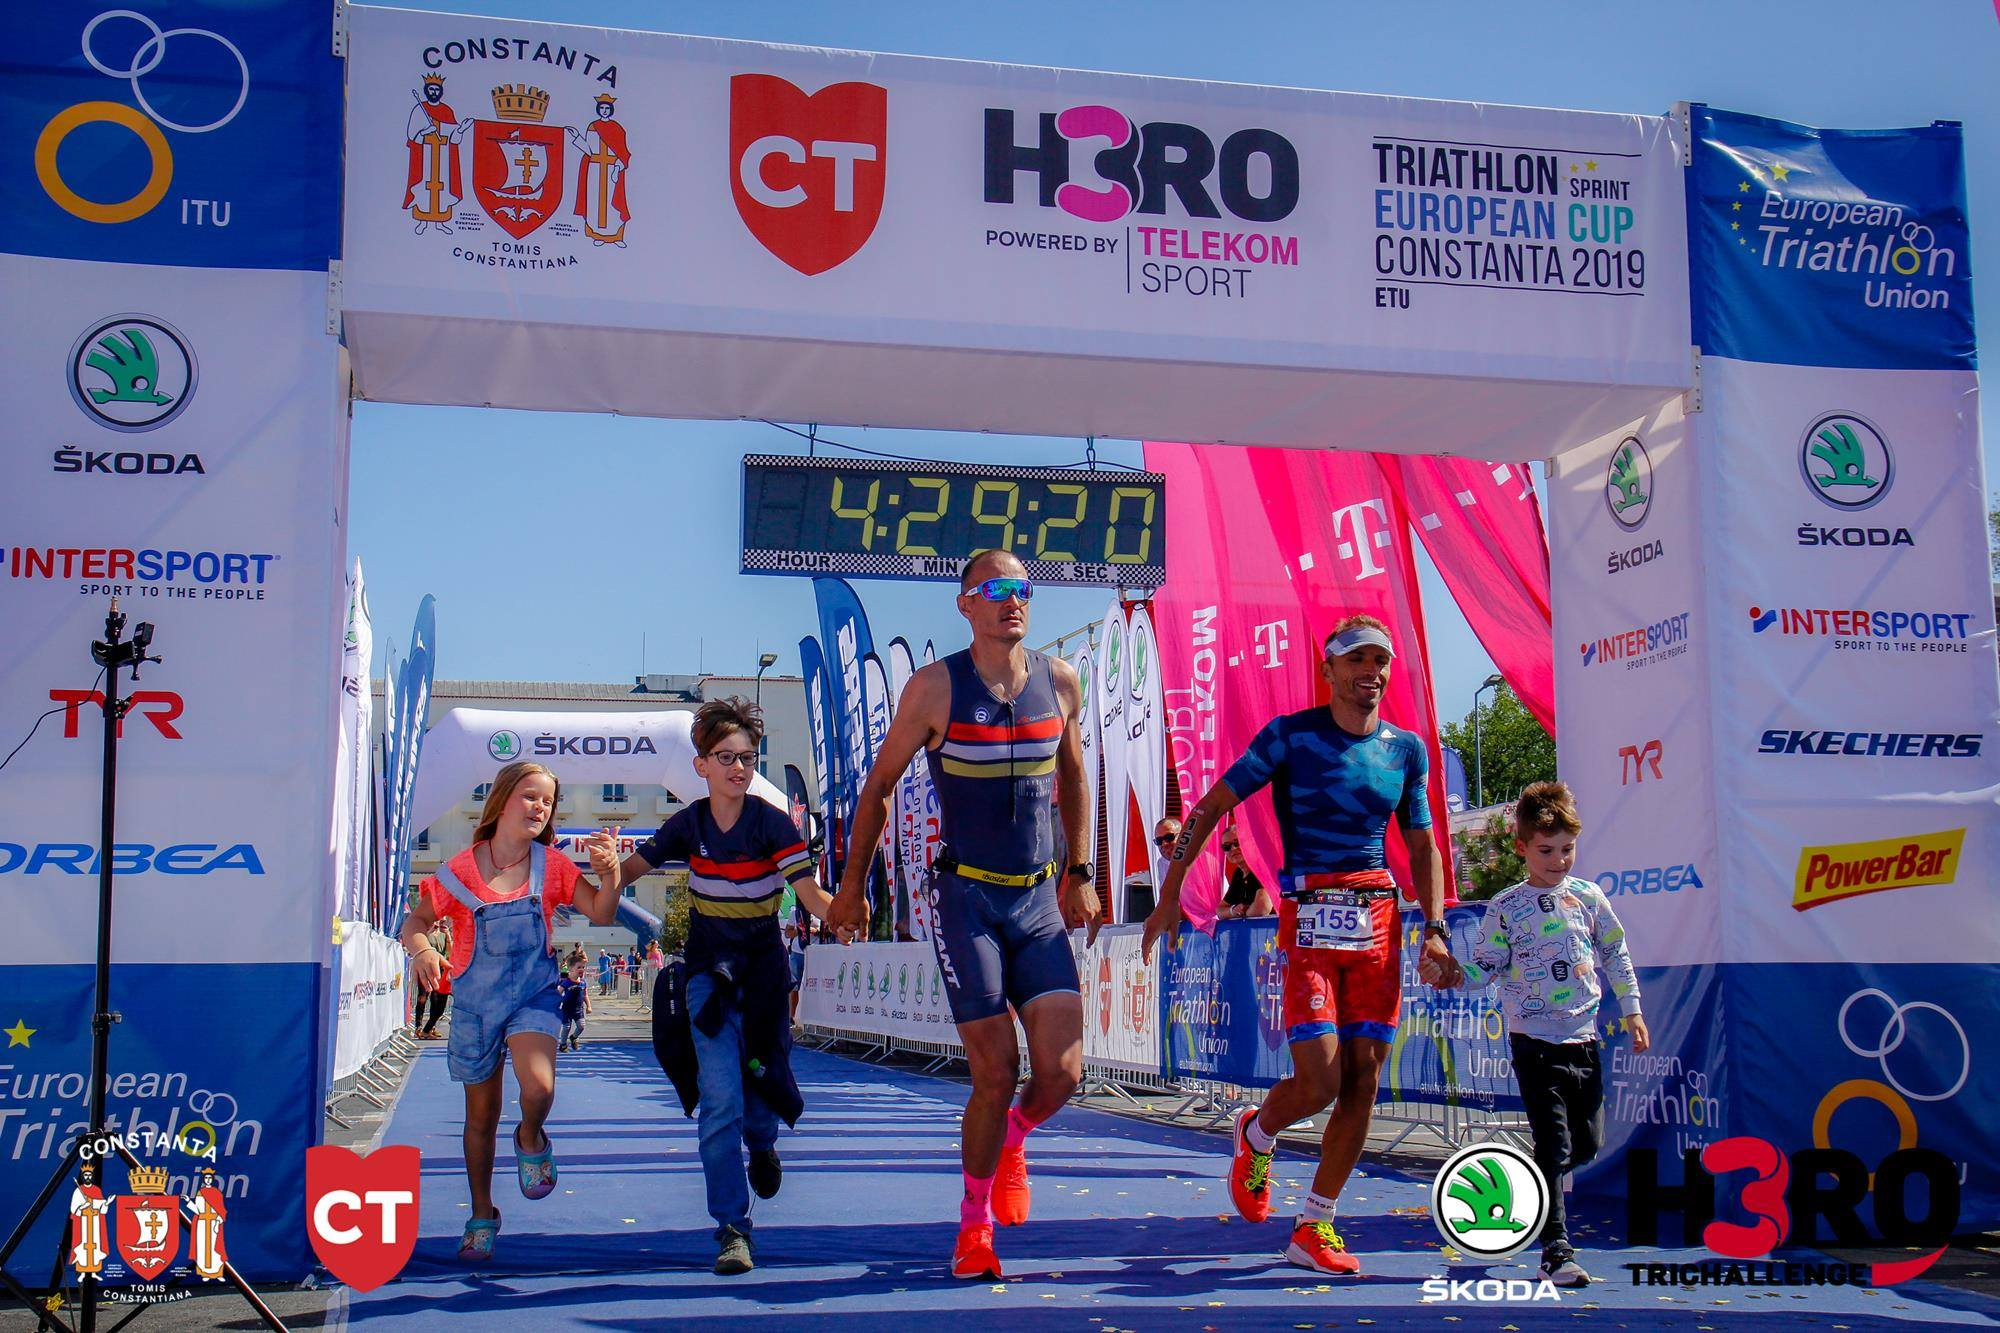 George Murar - Alex Ciocan - finish line H3RO by TriChallenge 2019